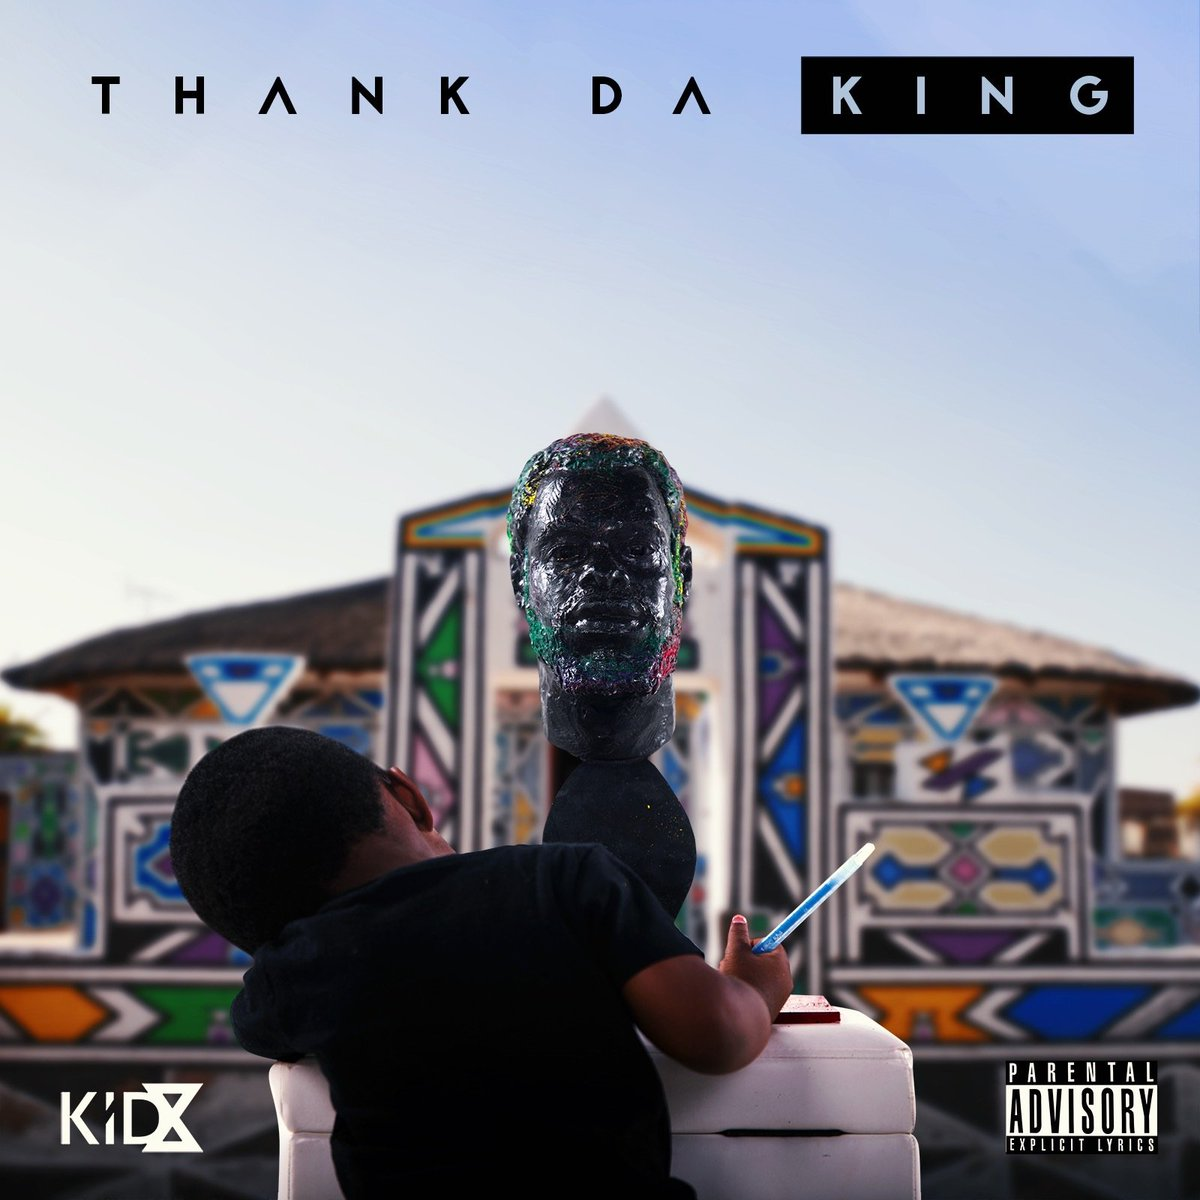 Listen To Kid X's New 'Thank Da King' Album DnisJ0oWwAInj2E